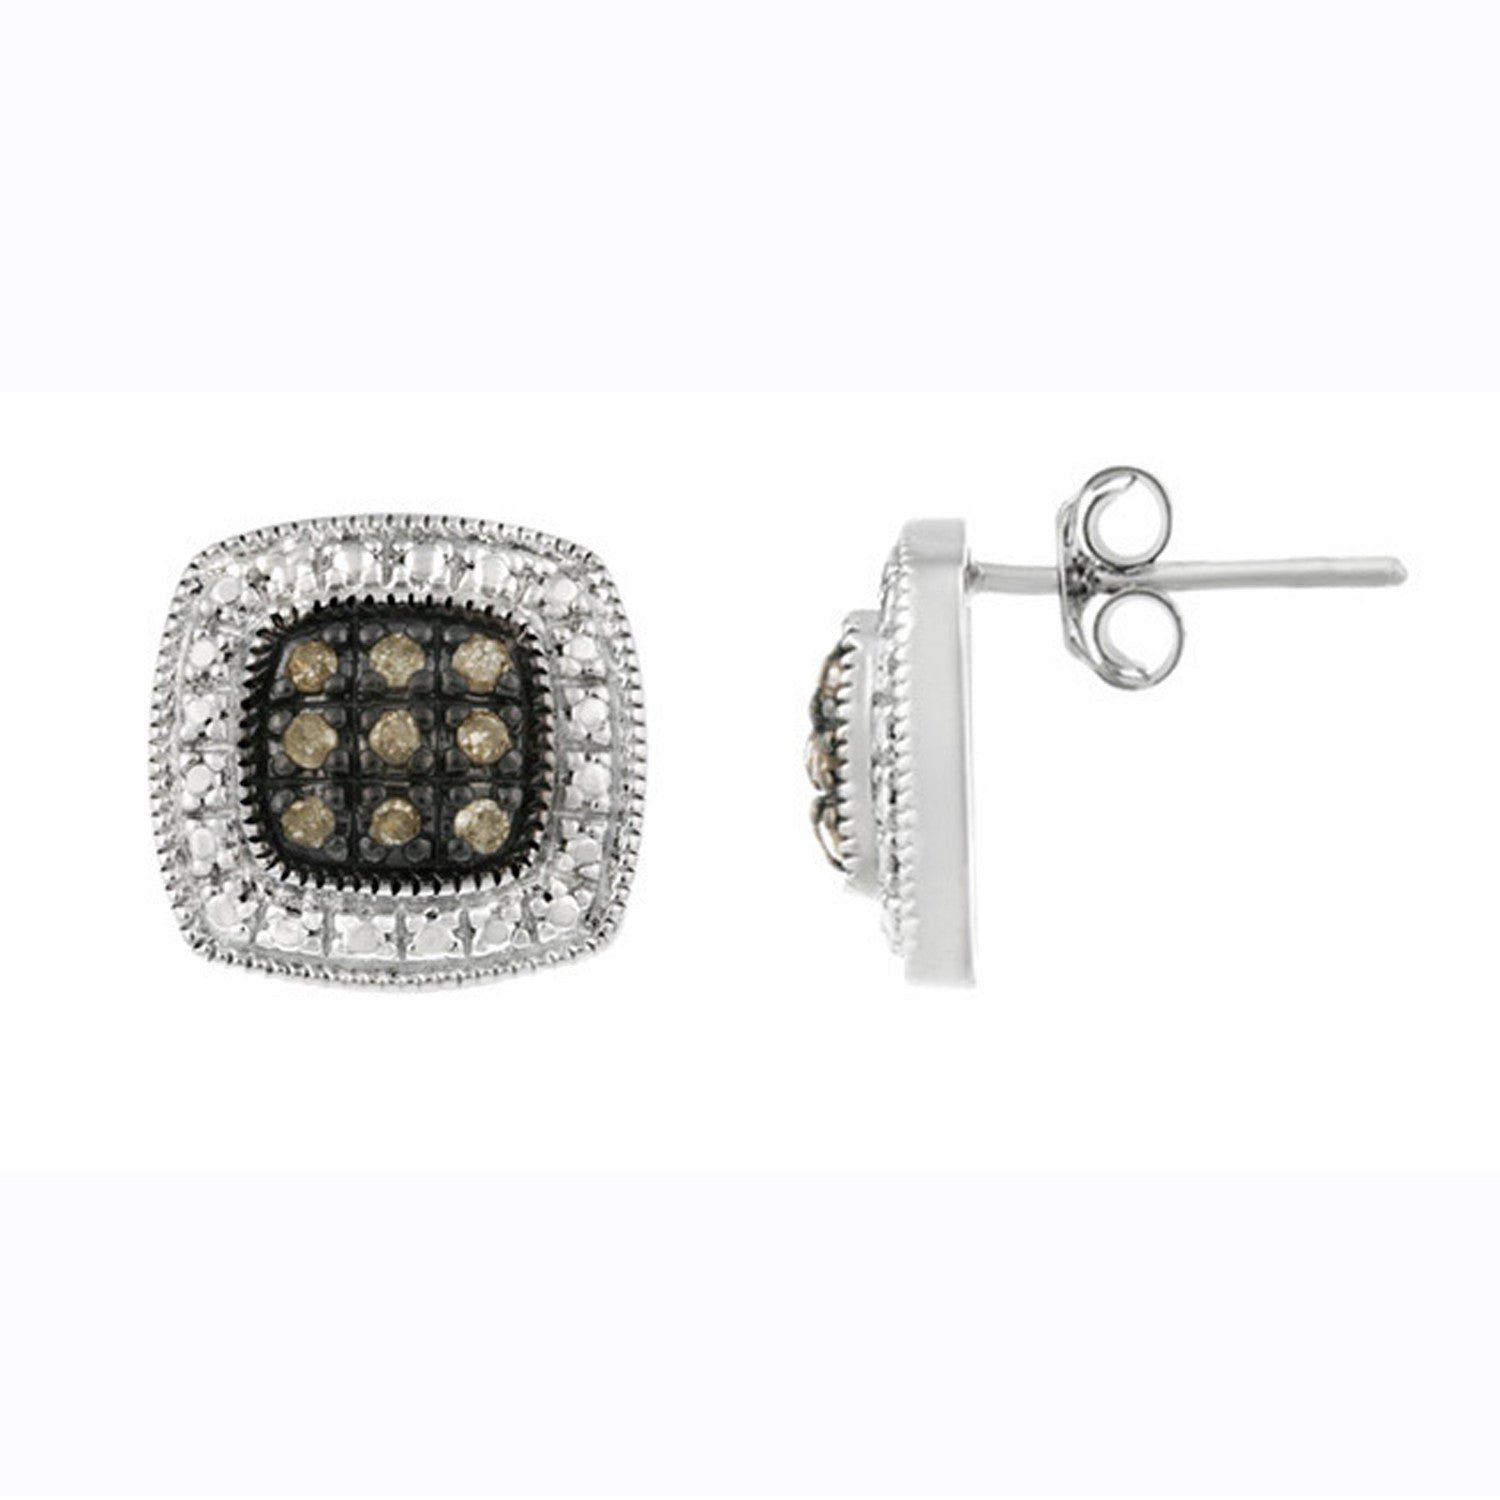 Brown Diamond Accented Sterling Silver Square Stud Earrings